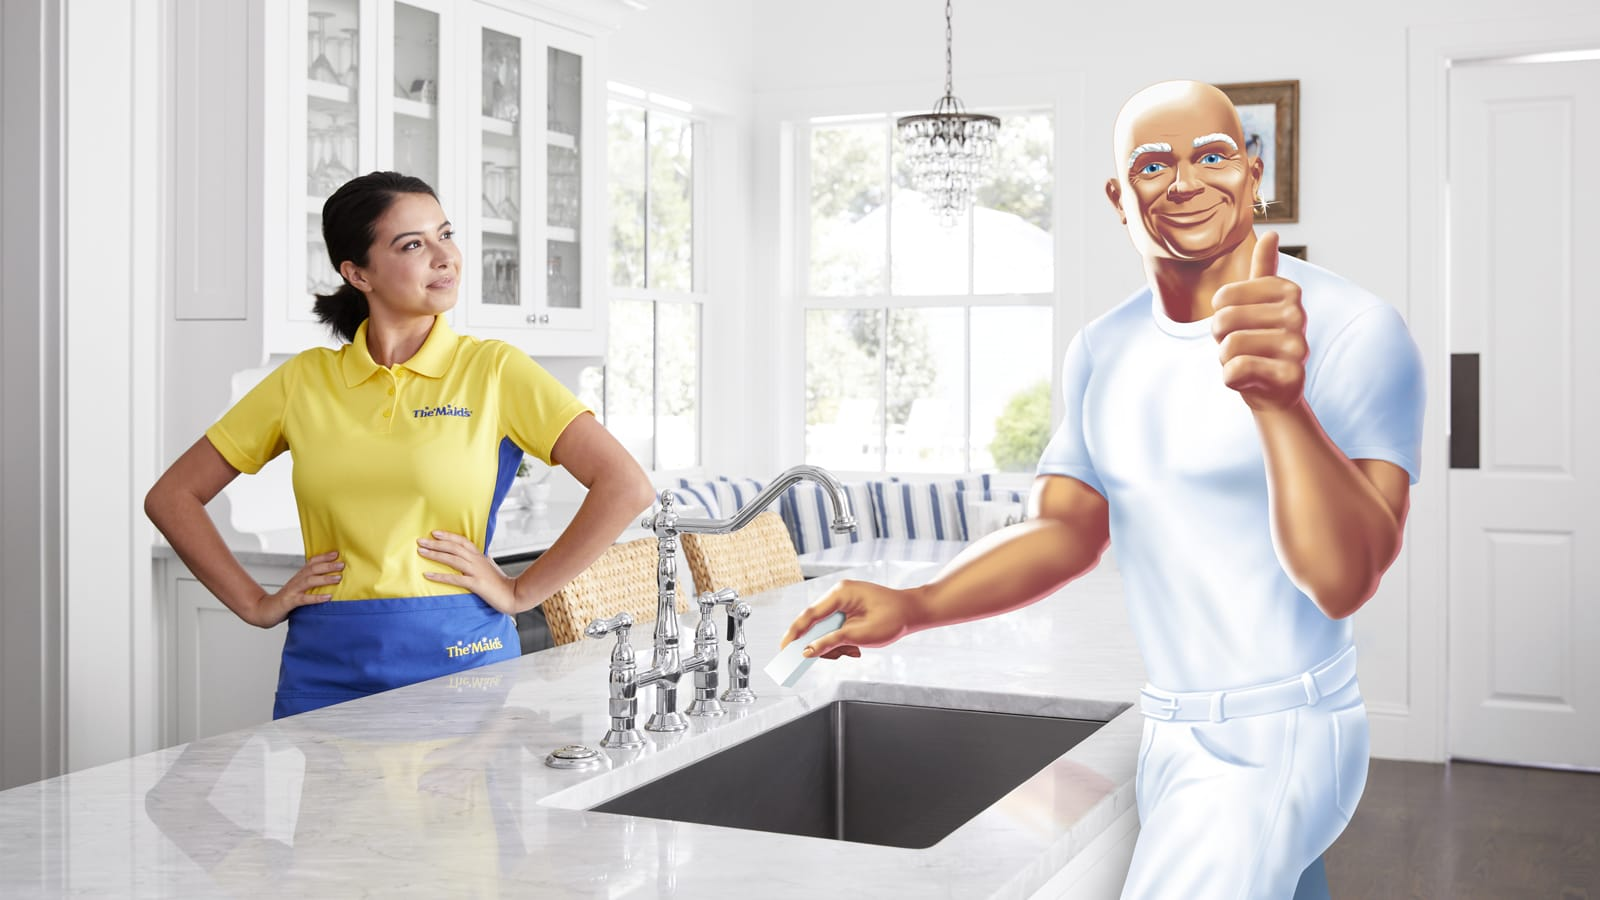 The Maids Partners With Mr. Clean